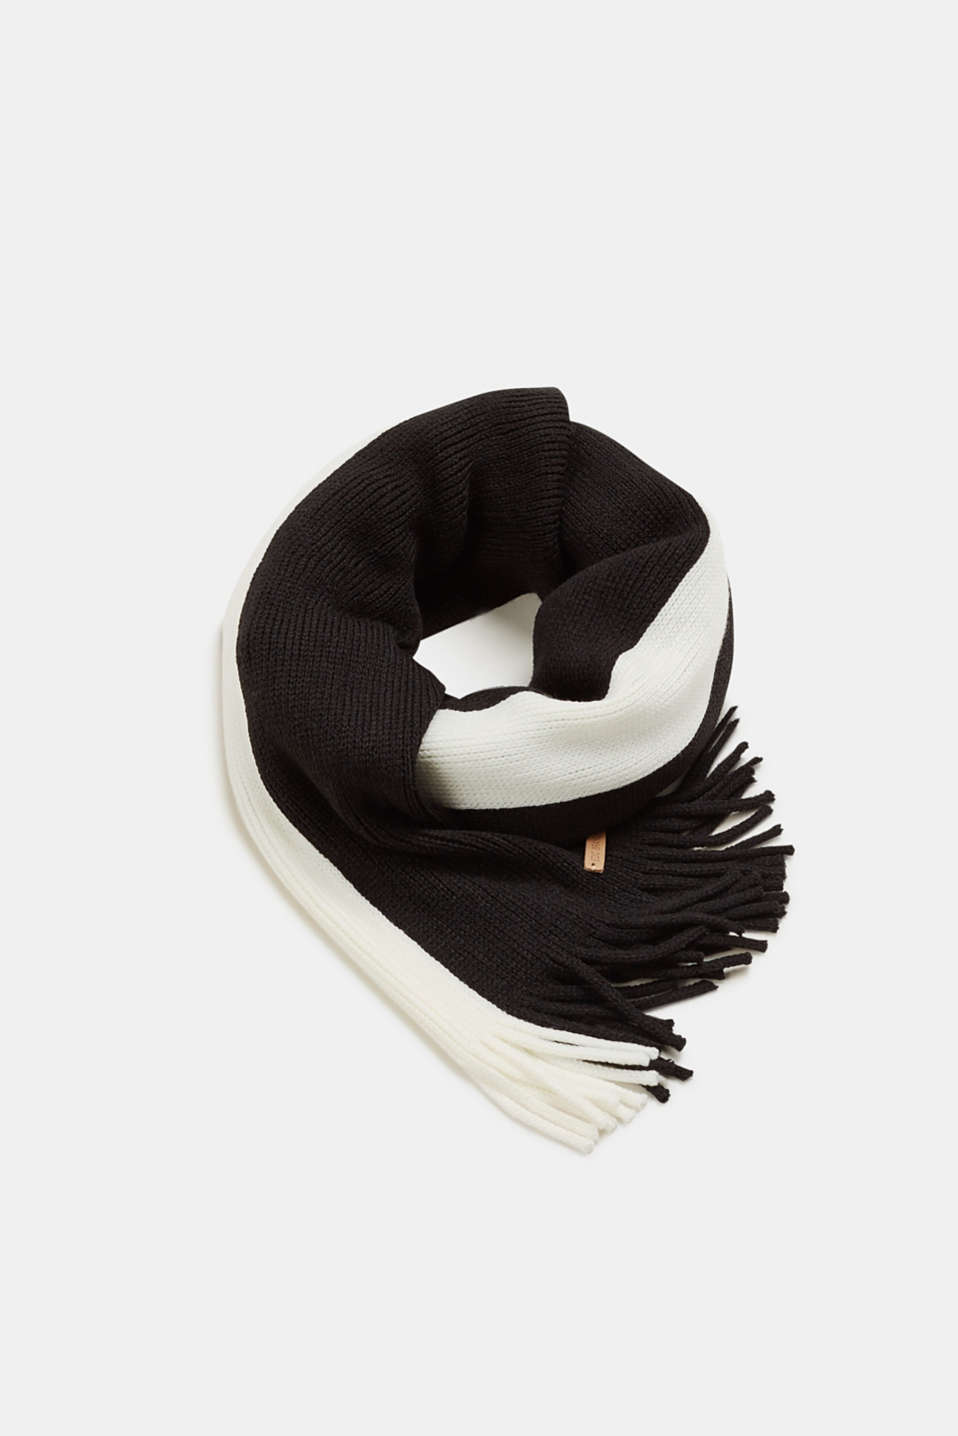 edc - Black/white scarf